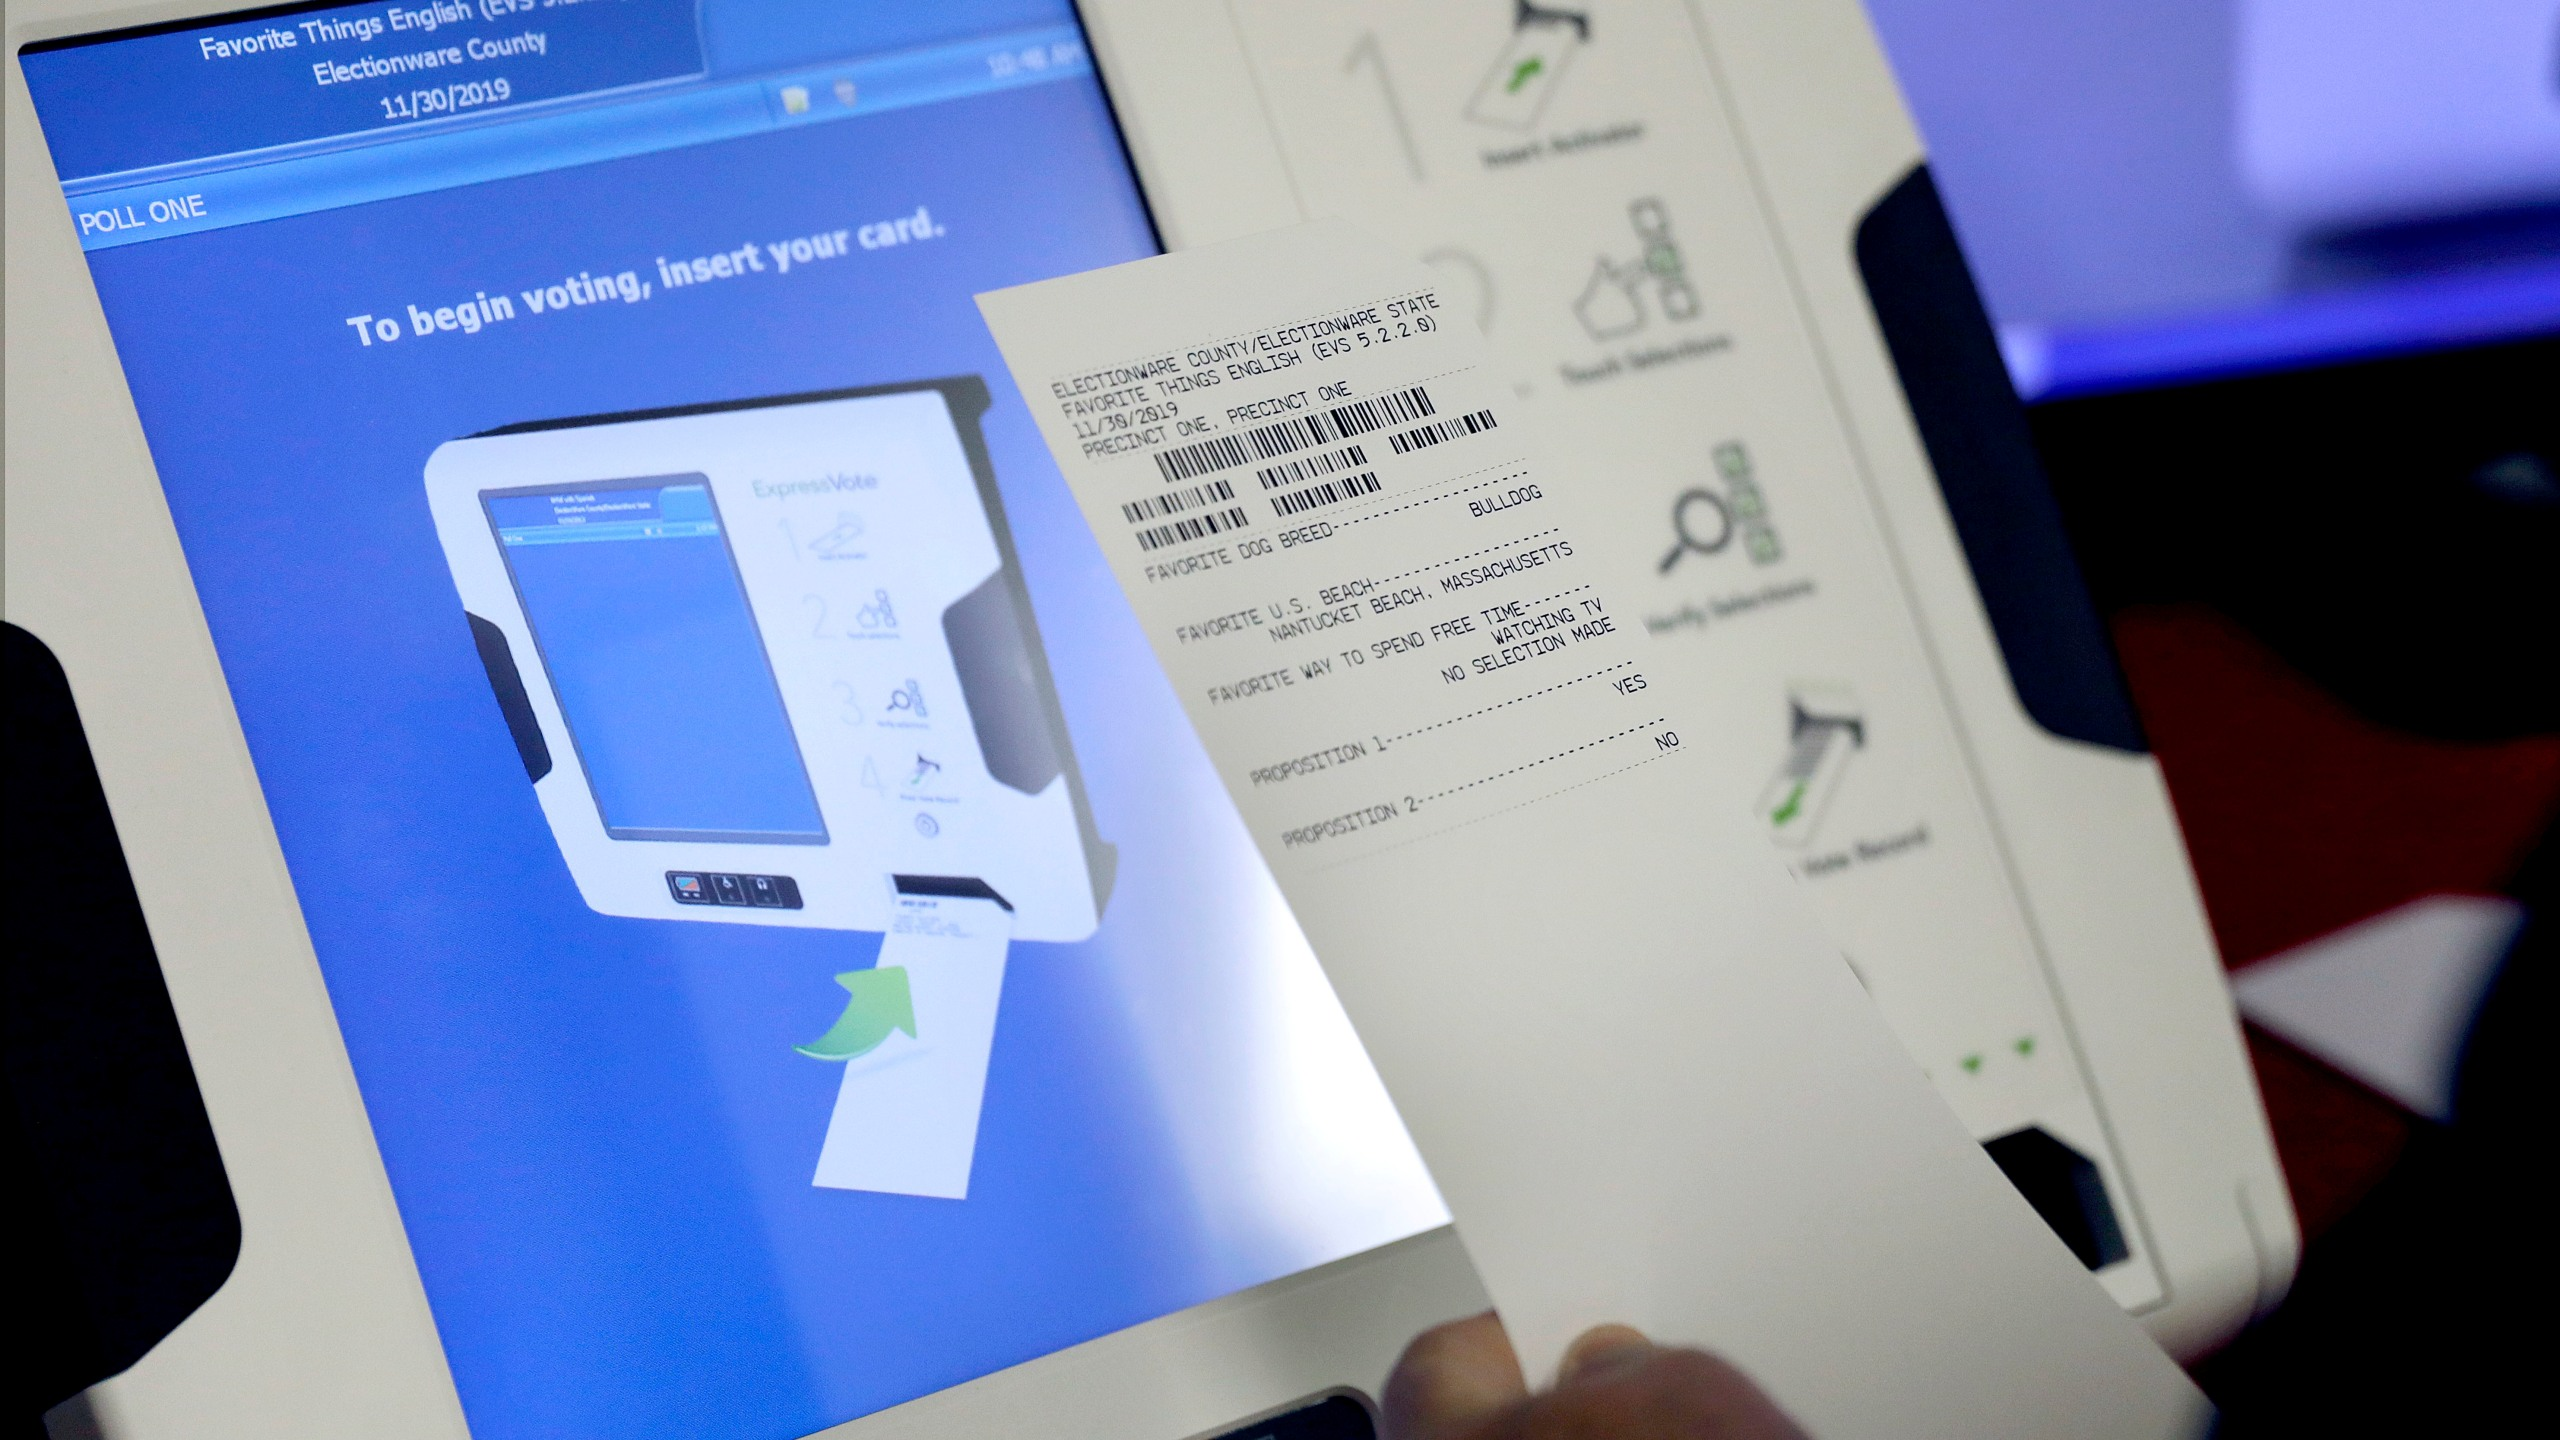 Election_Security_Voting_Machines_17605-159532.jpg71408816